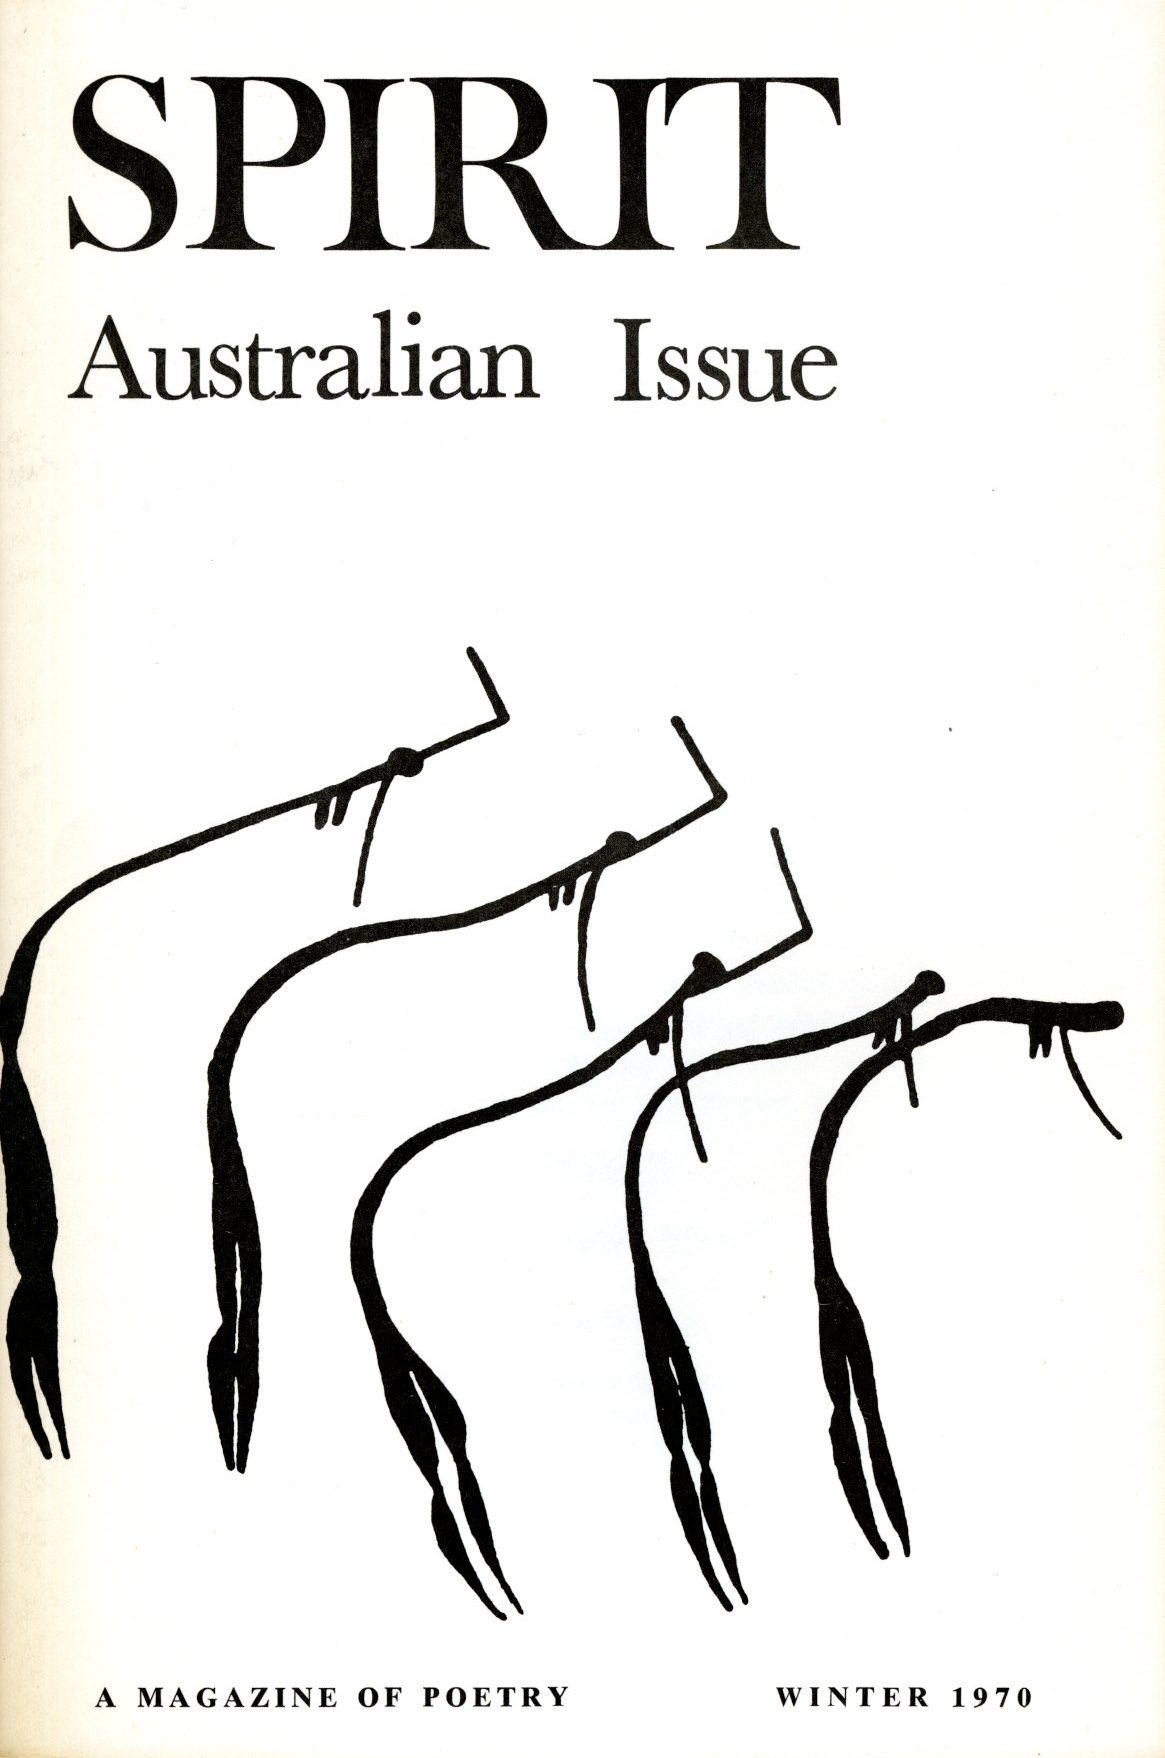 Spirit cover, Australian issue